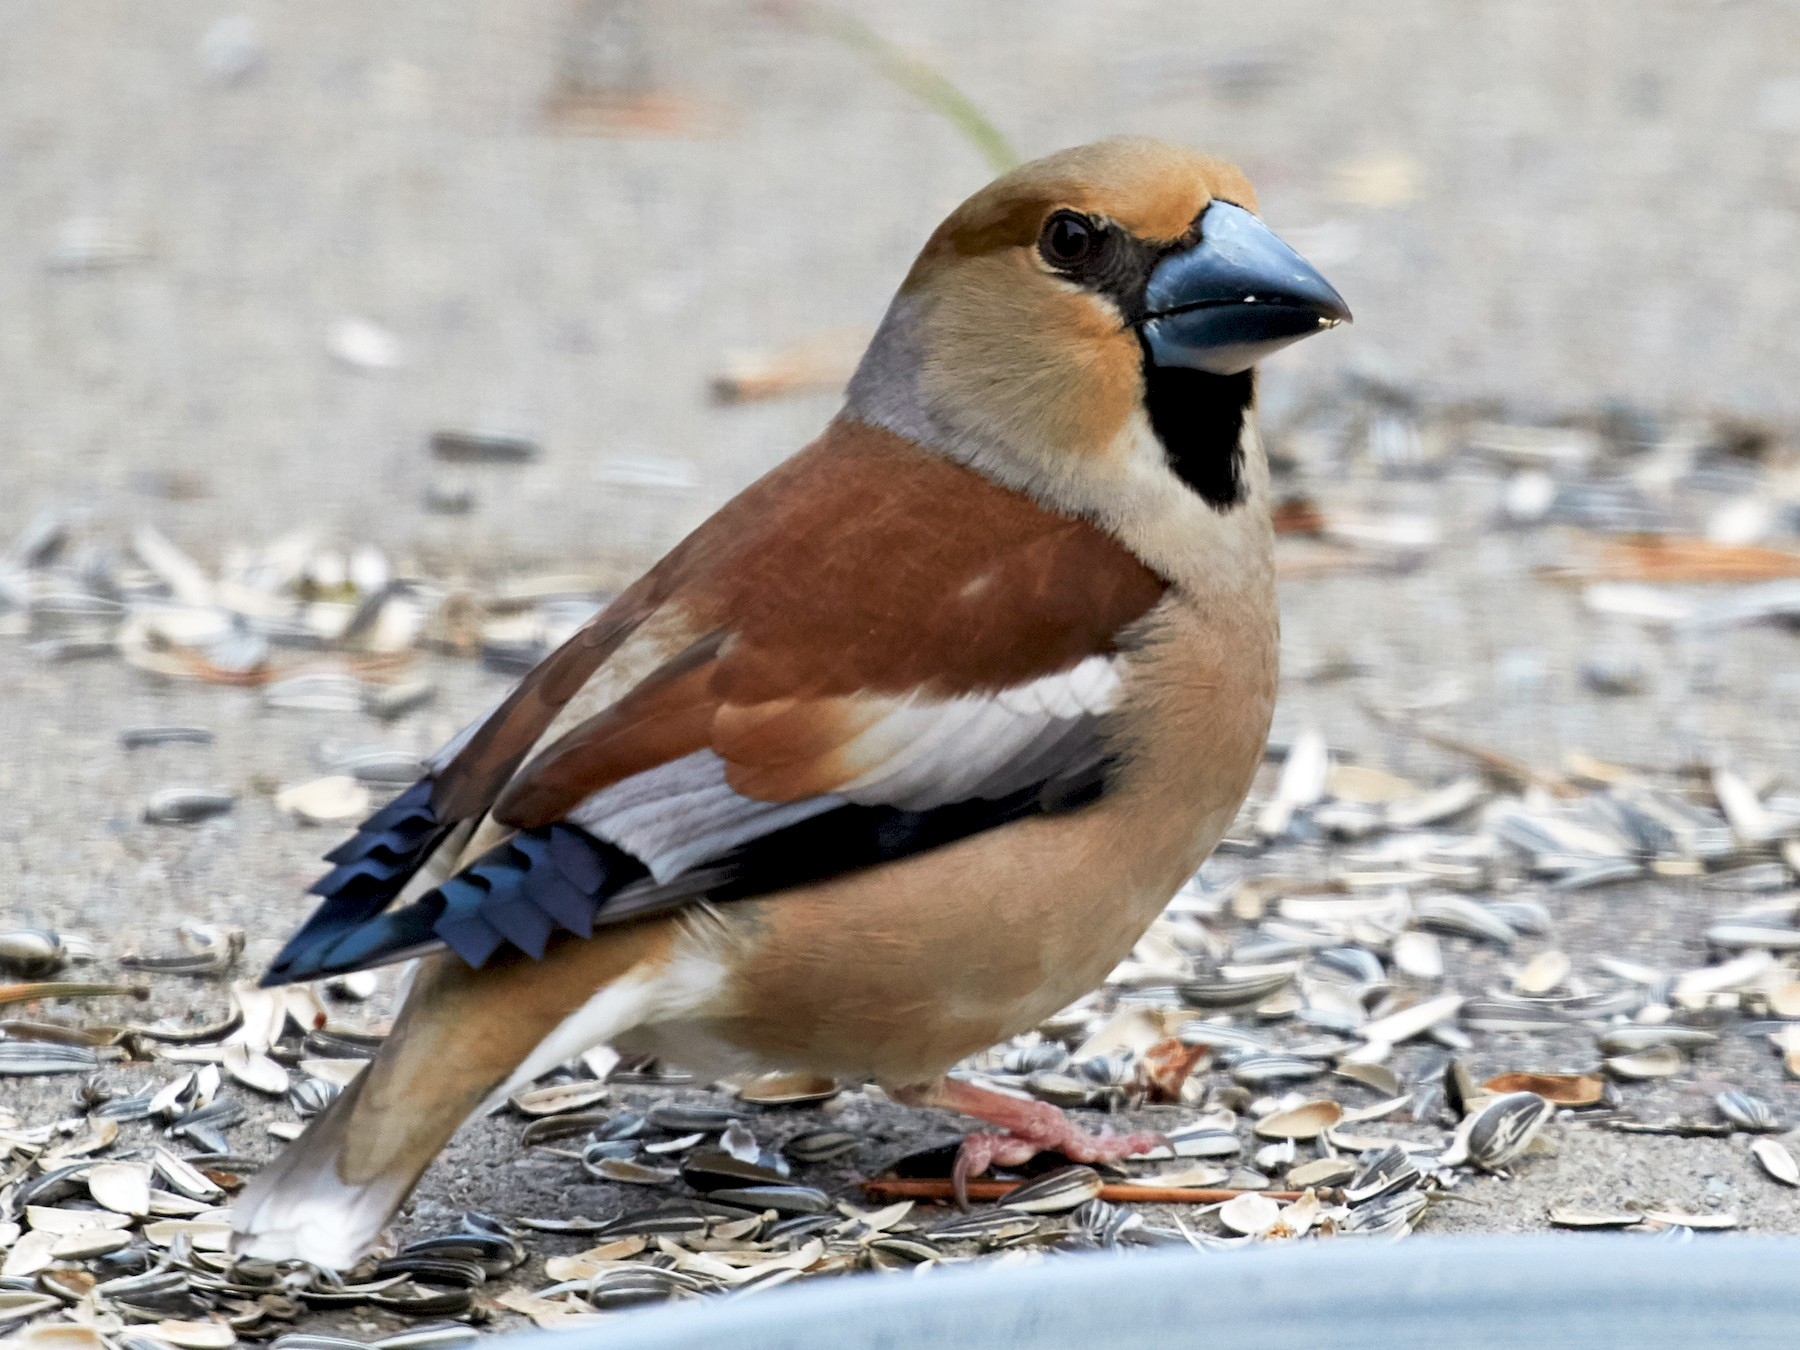 Hawfinch - Brooke Miller